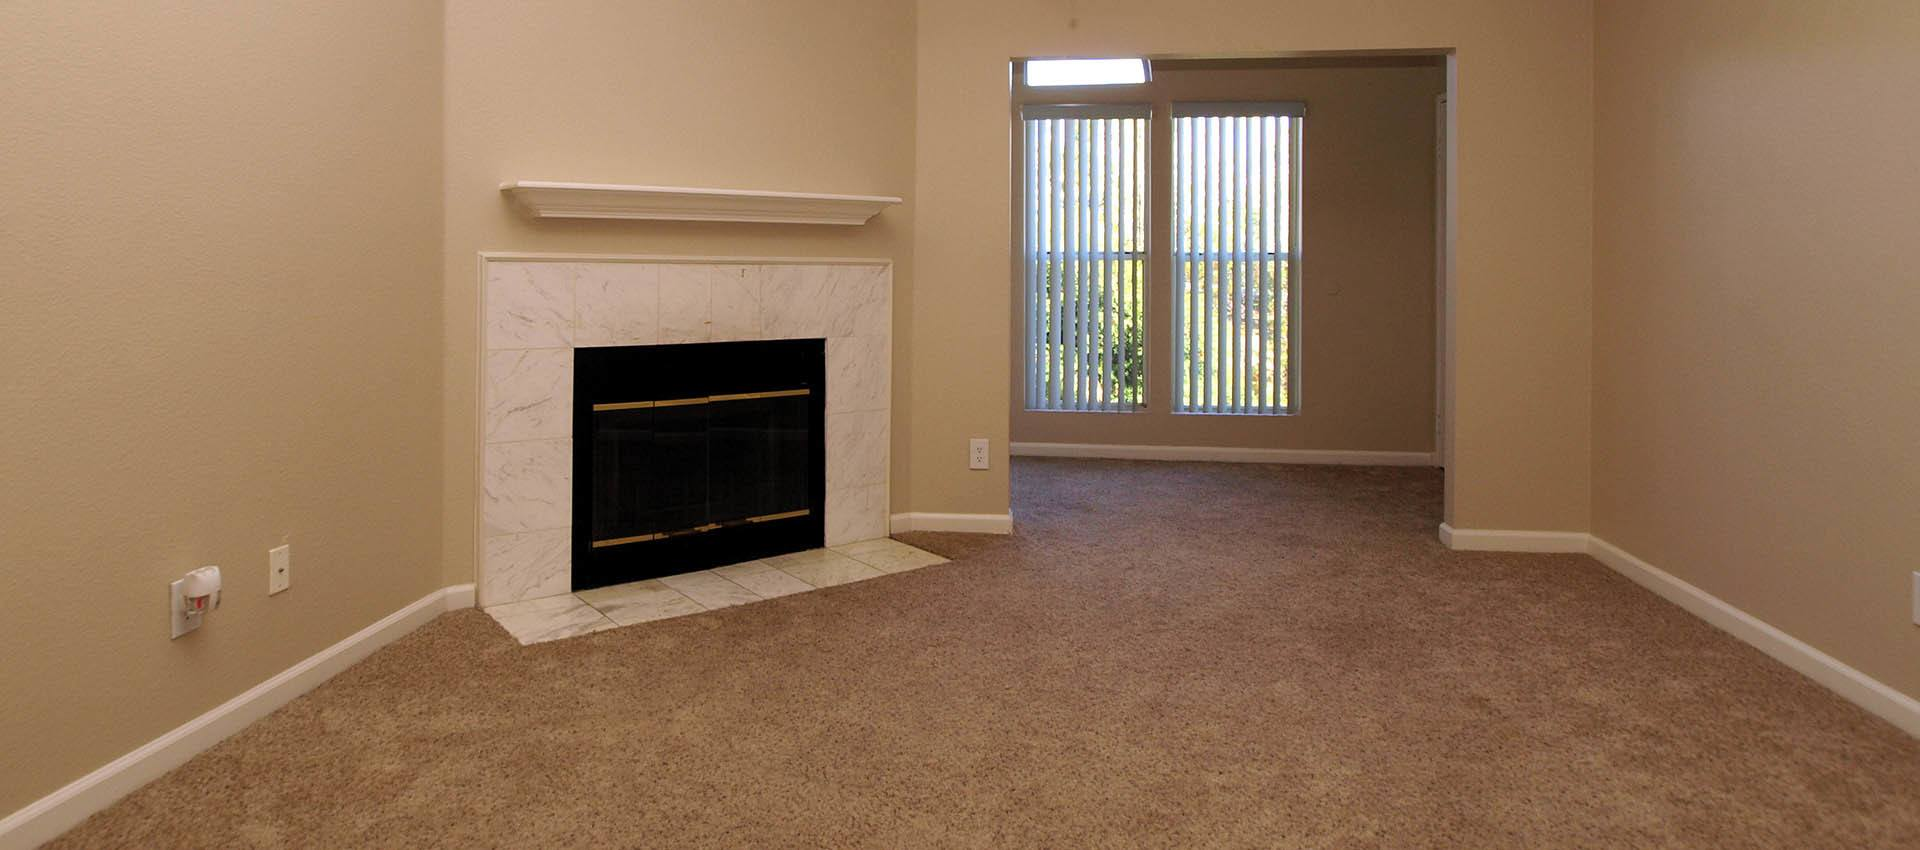 Living Room With Fireplace at Sterling Heights Apartment Homes in Benicia